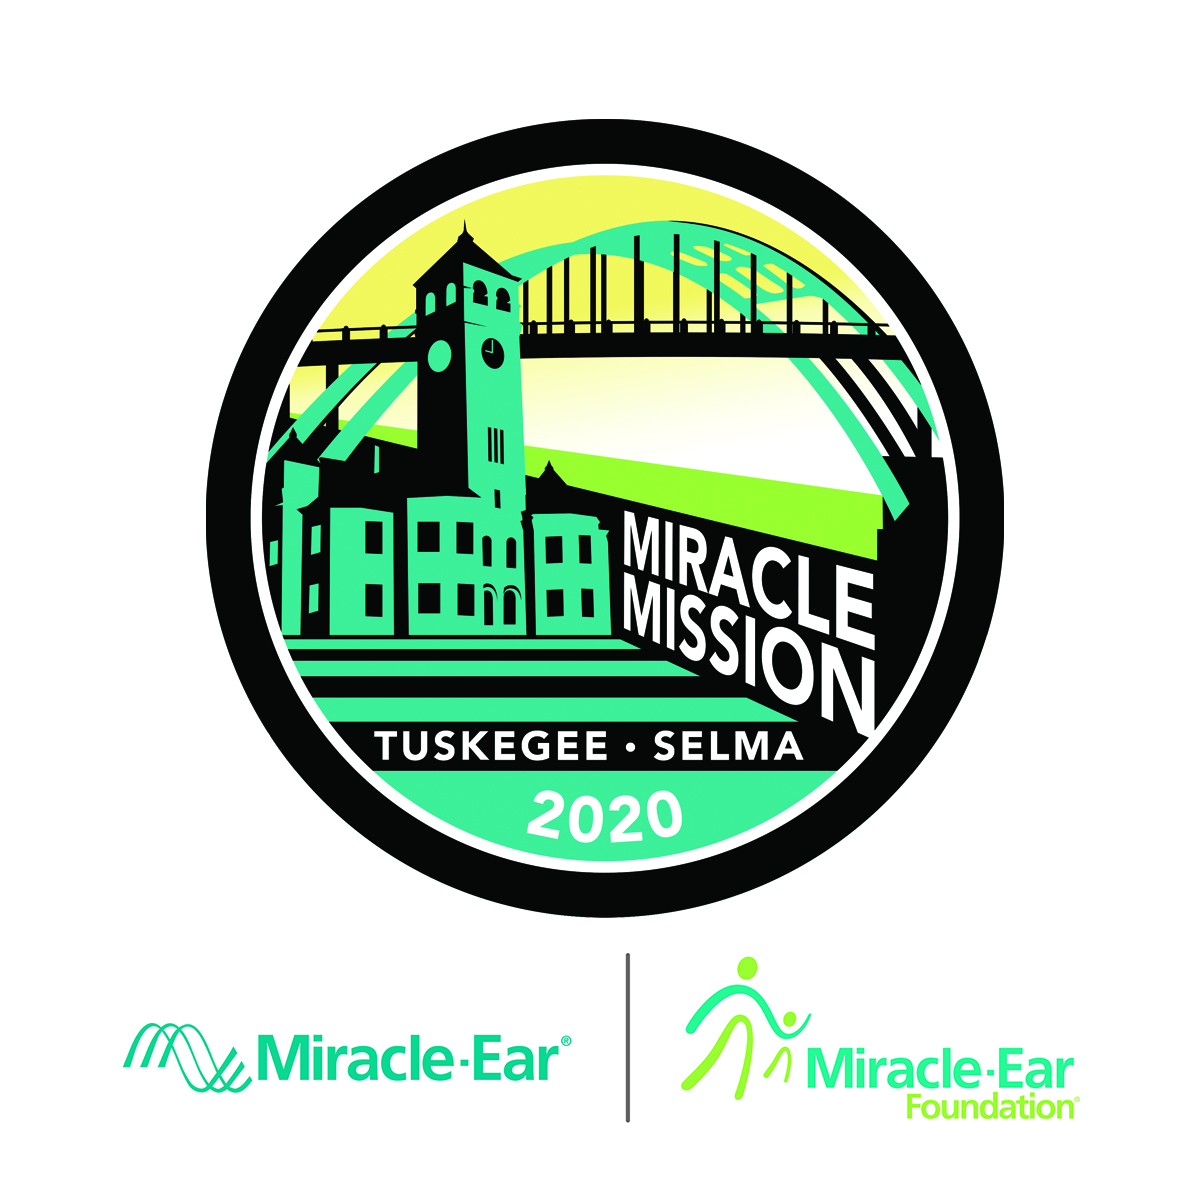 Miracle Mission 2020